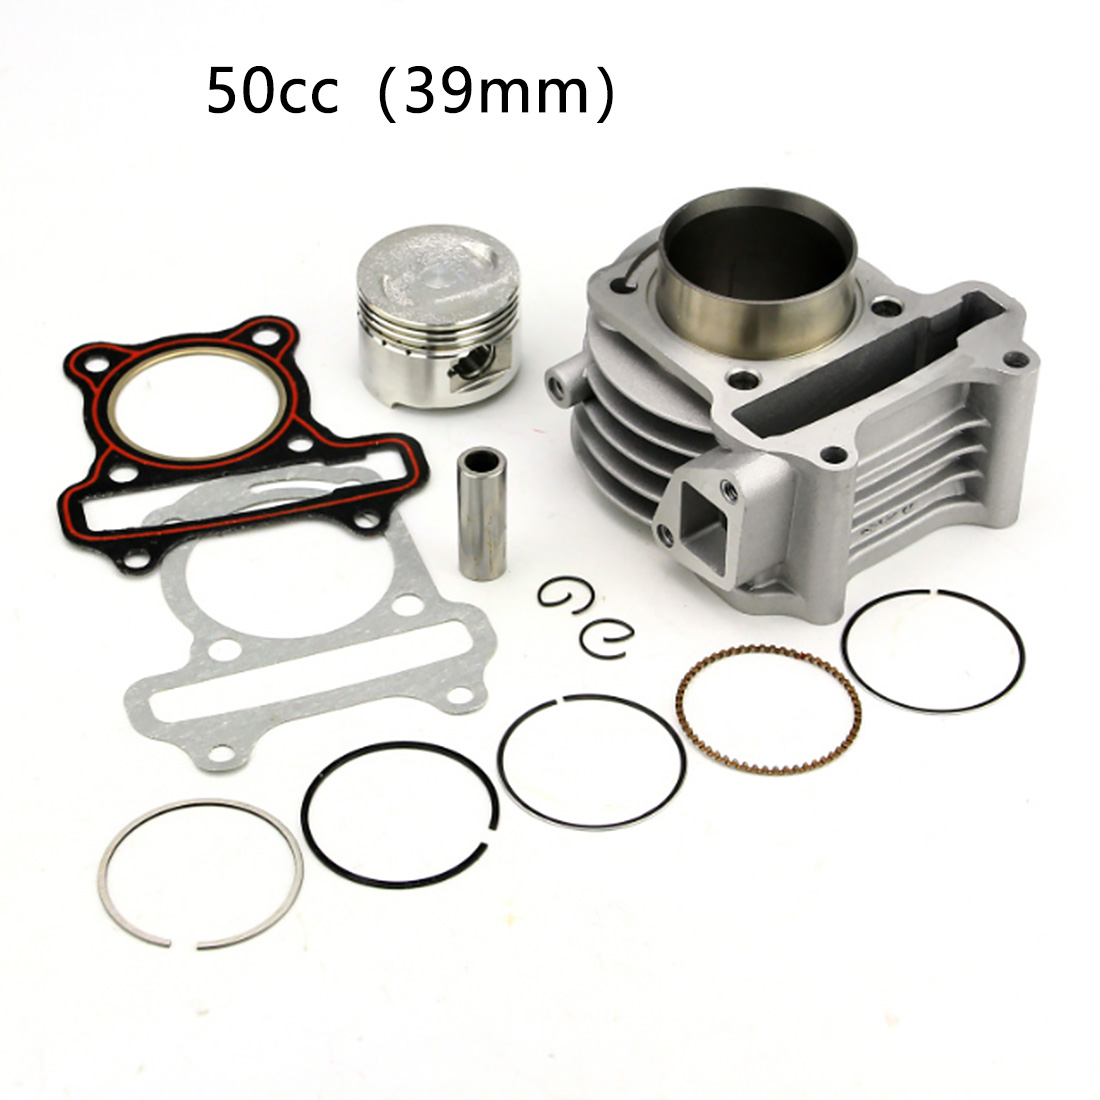 Universal Cylinder Kit Scooter Big Bore Engine Part Professional Practical Aluminum Alloy Durable Crankshaft Piston Ring For GY6